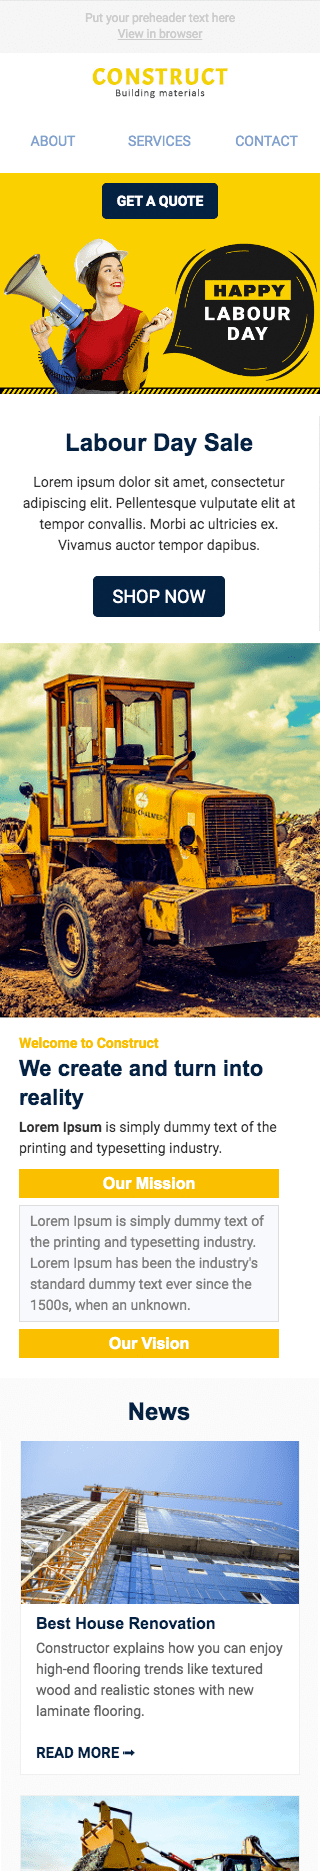 Labor Day Email Template «Building the future» for Construction industry mobile view